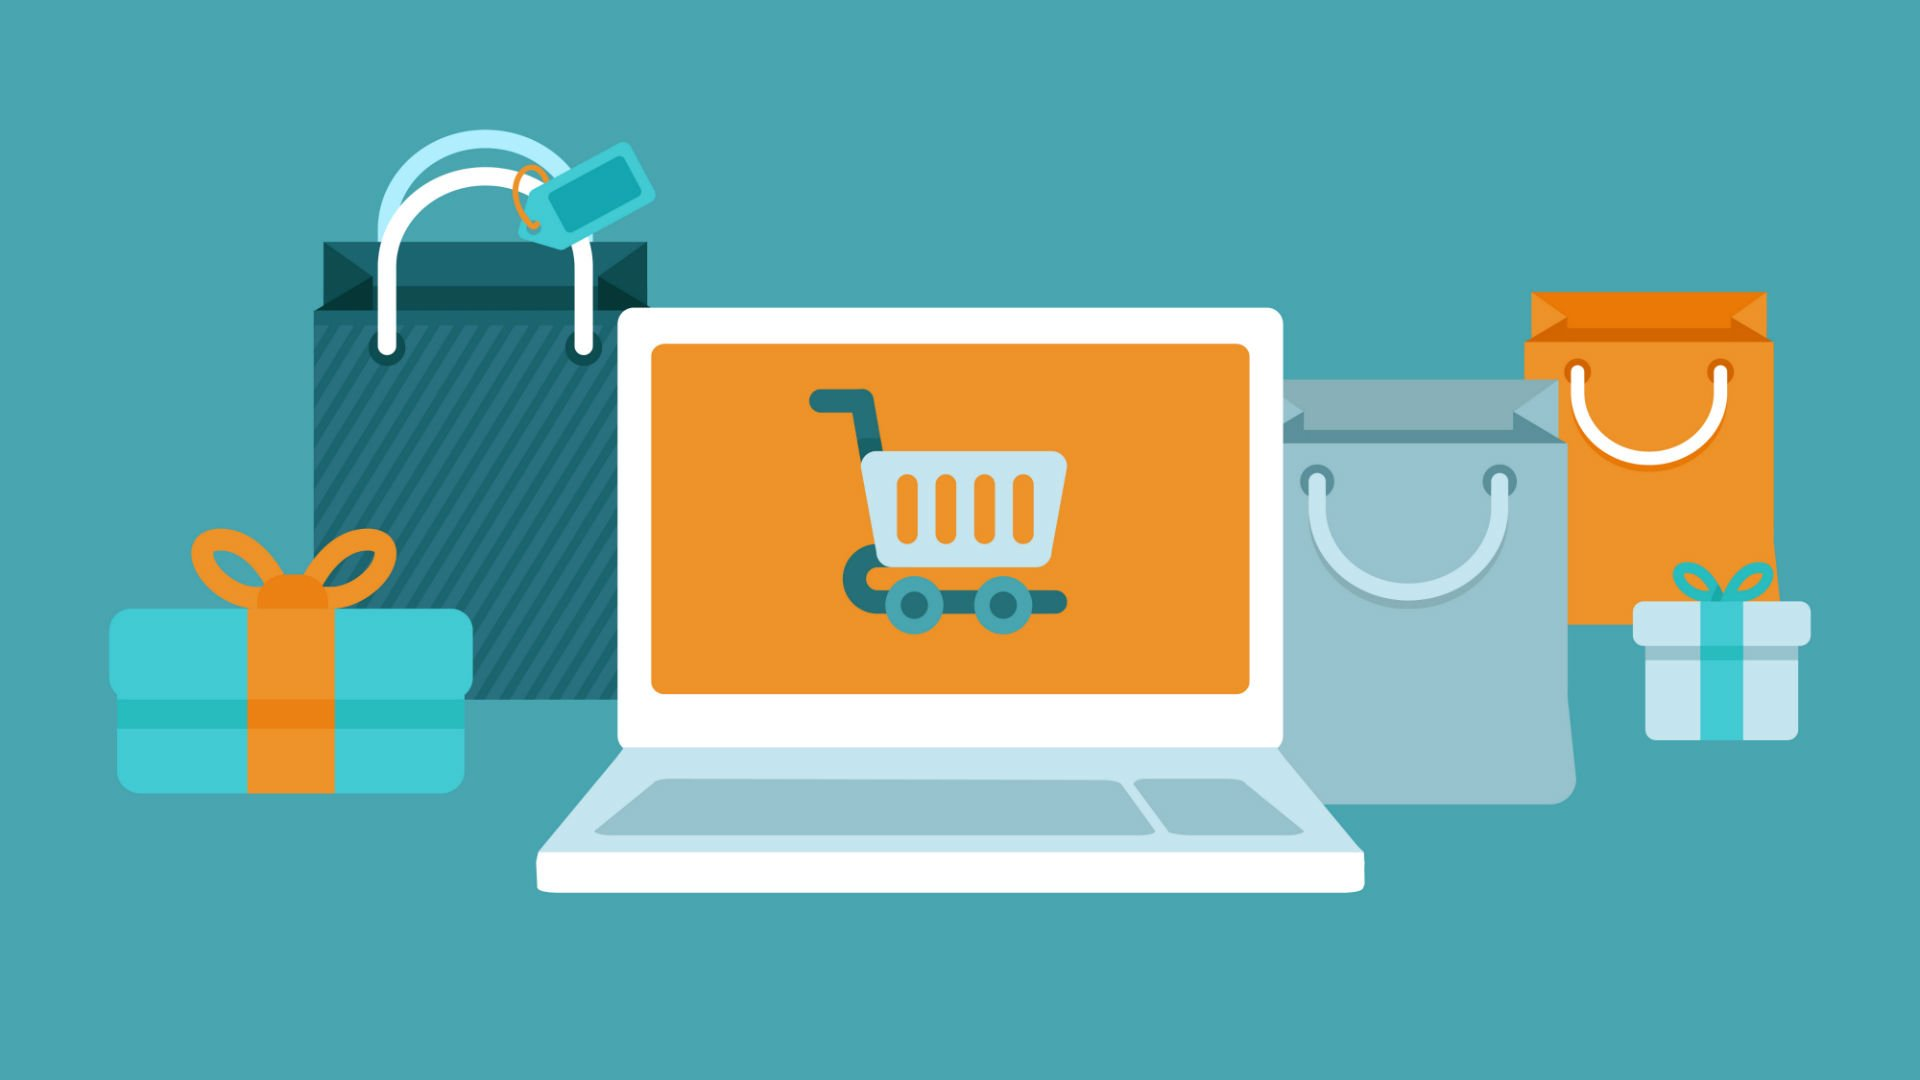 Online retail sees continued growth with digital commerce up 14% YoY [Report]